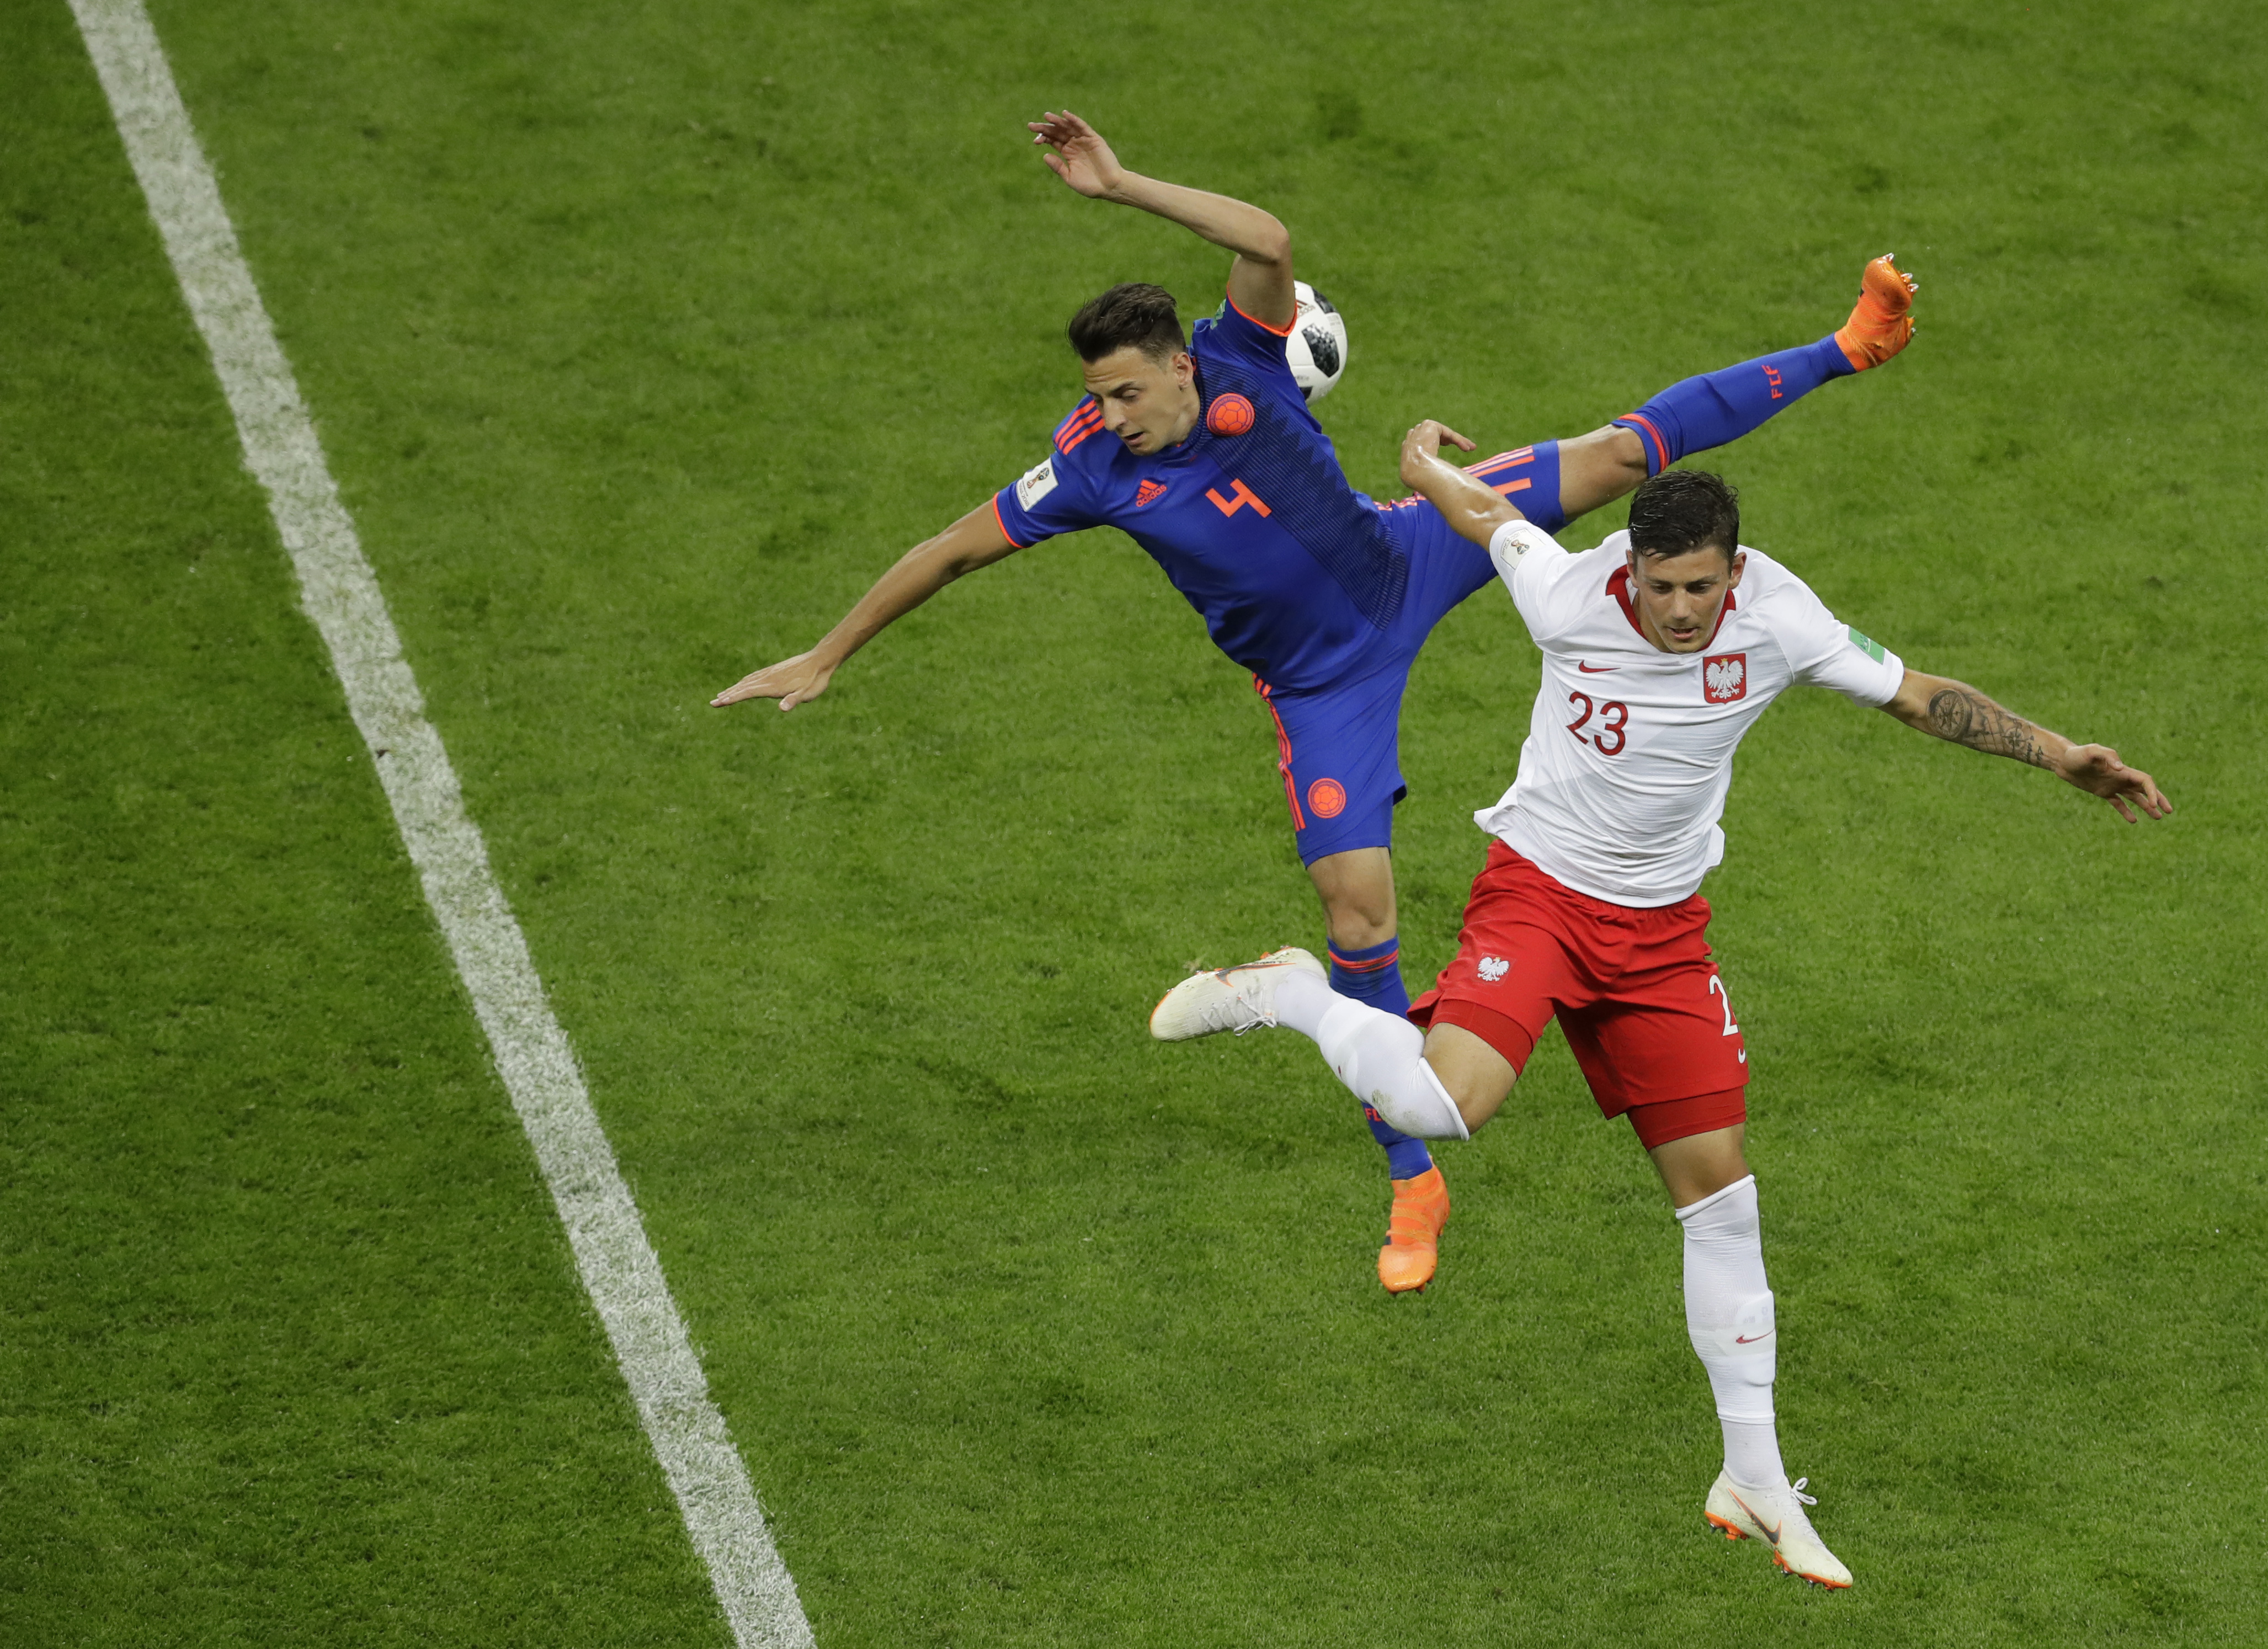 <div class='meta'><div class='origin-logo' data-origin='none'></div><span class='caption-text' data-credit='Sergei Grits/AP Photo'>Colombia's Santiago Arias, left, and Poland's Dawid Kownacki battle for the ball during the group H match at the Kazan Arena in Kazan, Russia, Sunday, June 24, 2018.</span></div>